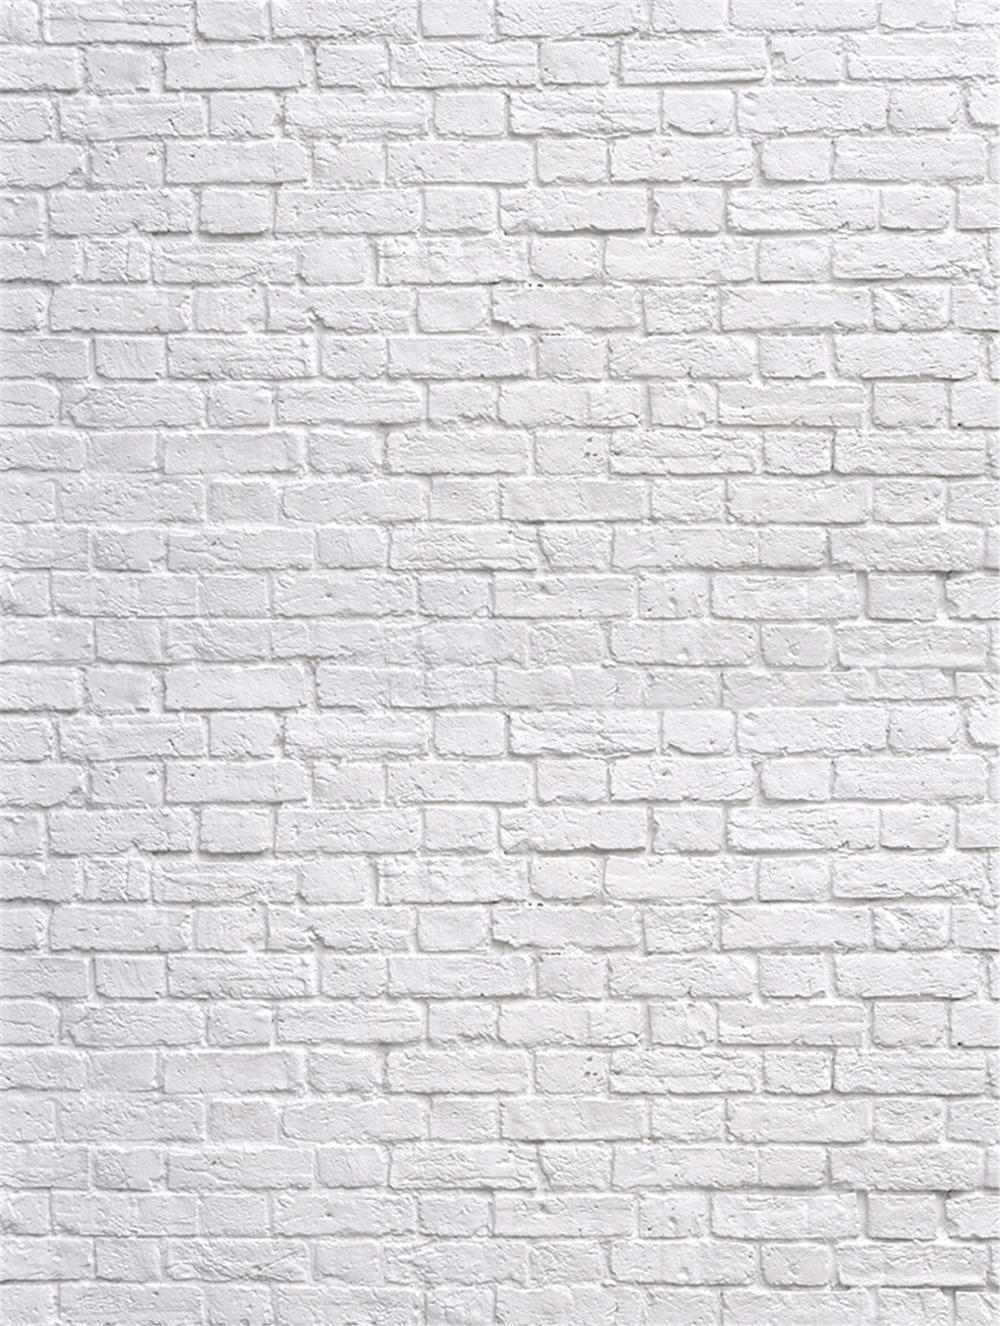 kate white brick wall backgrounds for photo studio 10ft wedding